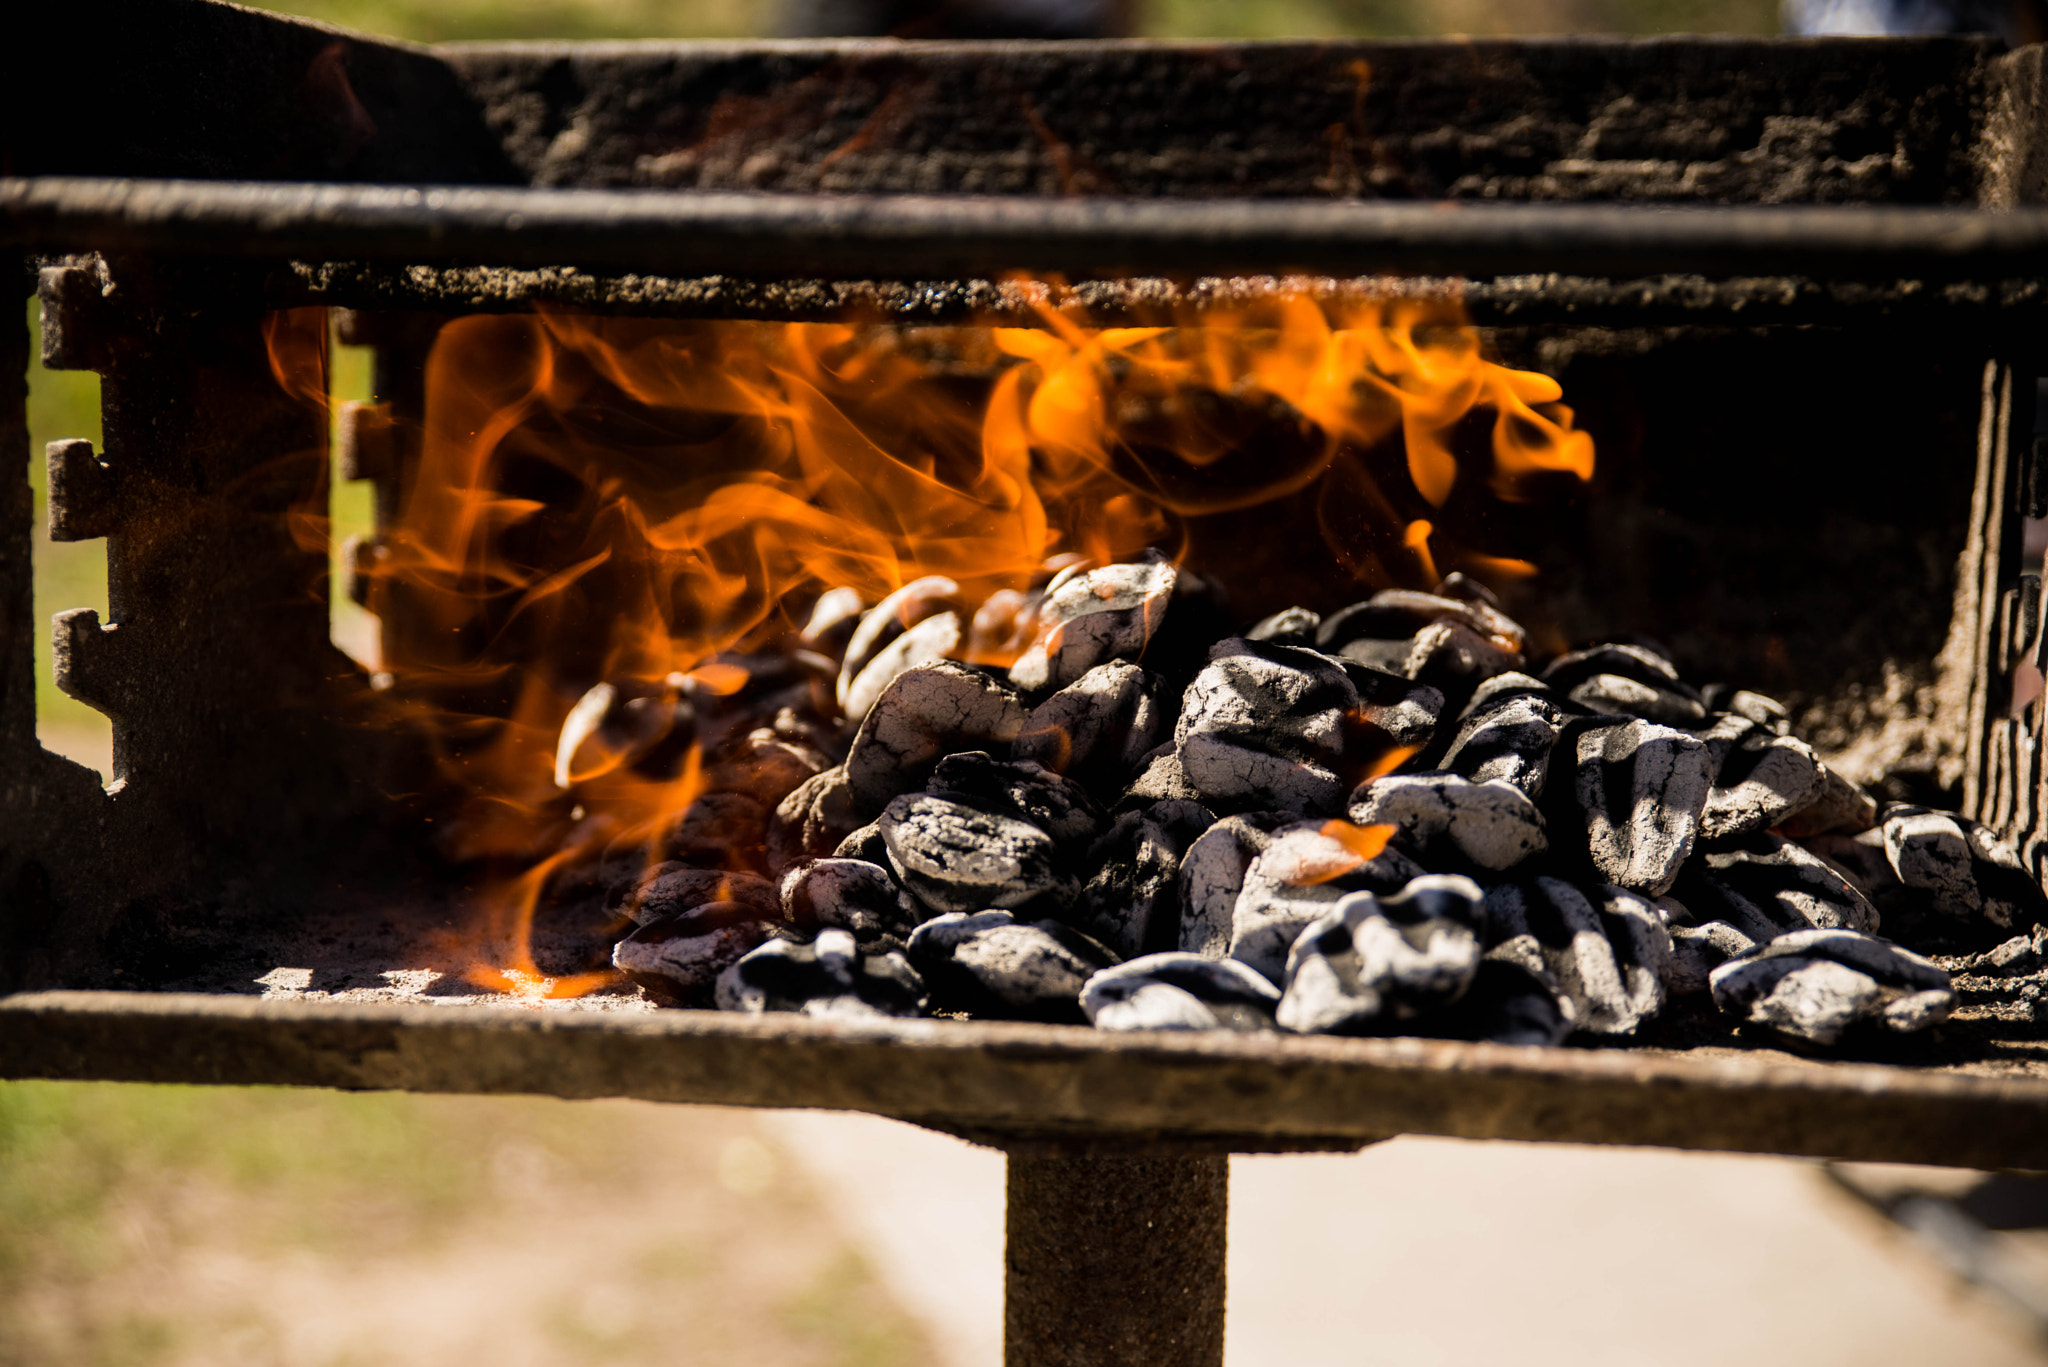 Photograph Barbeque by Deepak Dhamuria on 500px